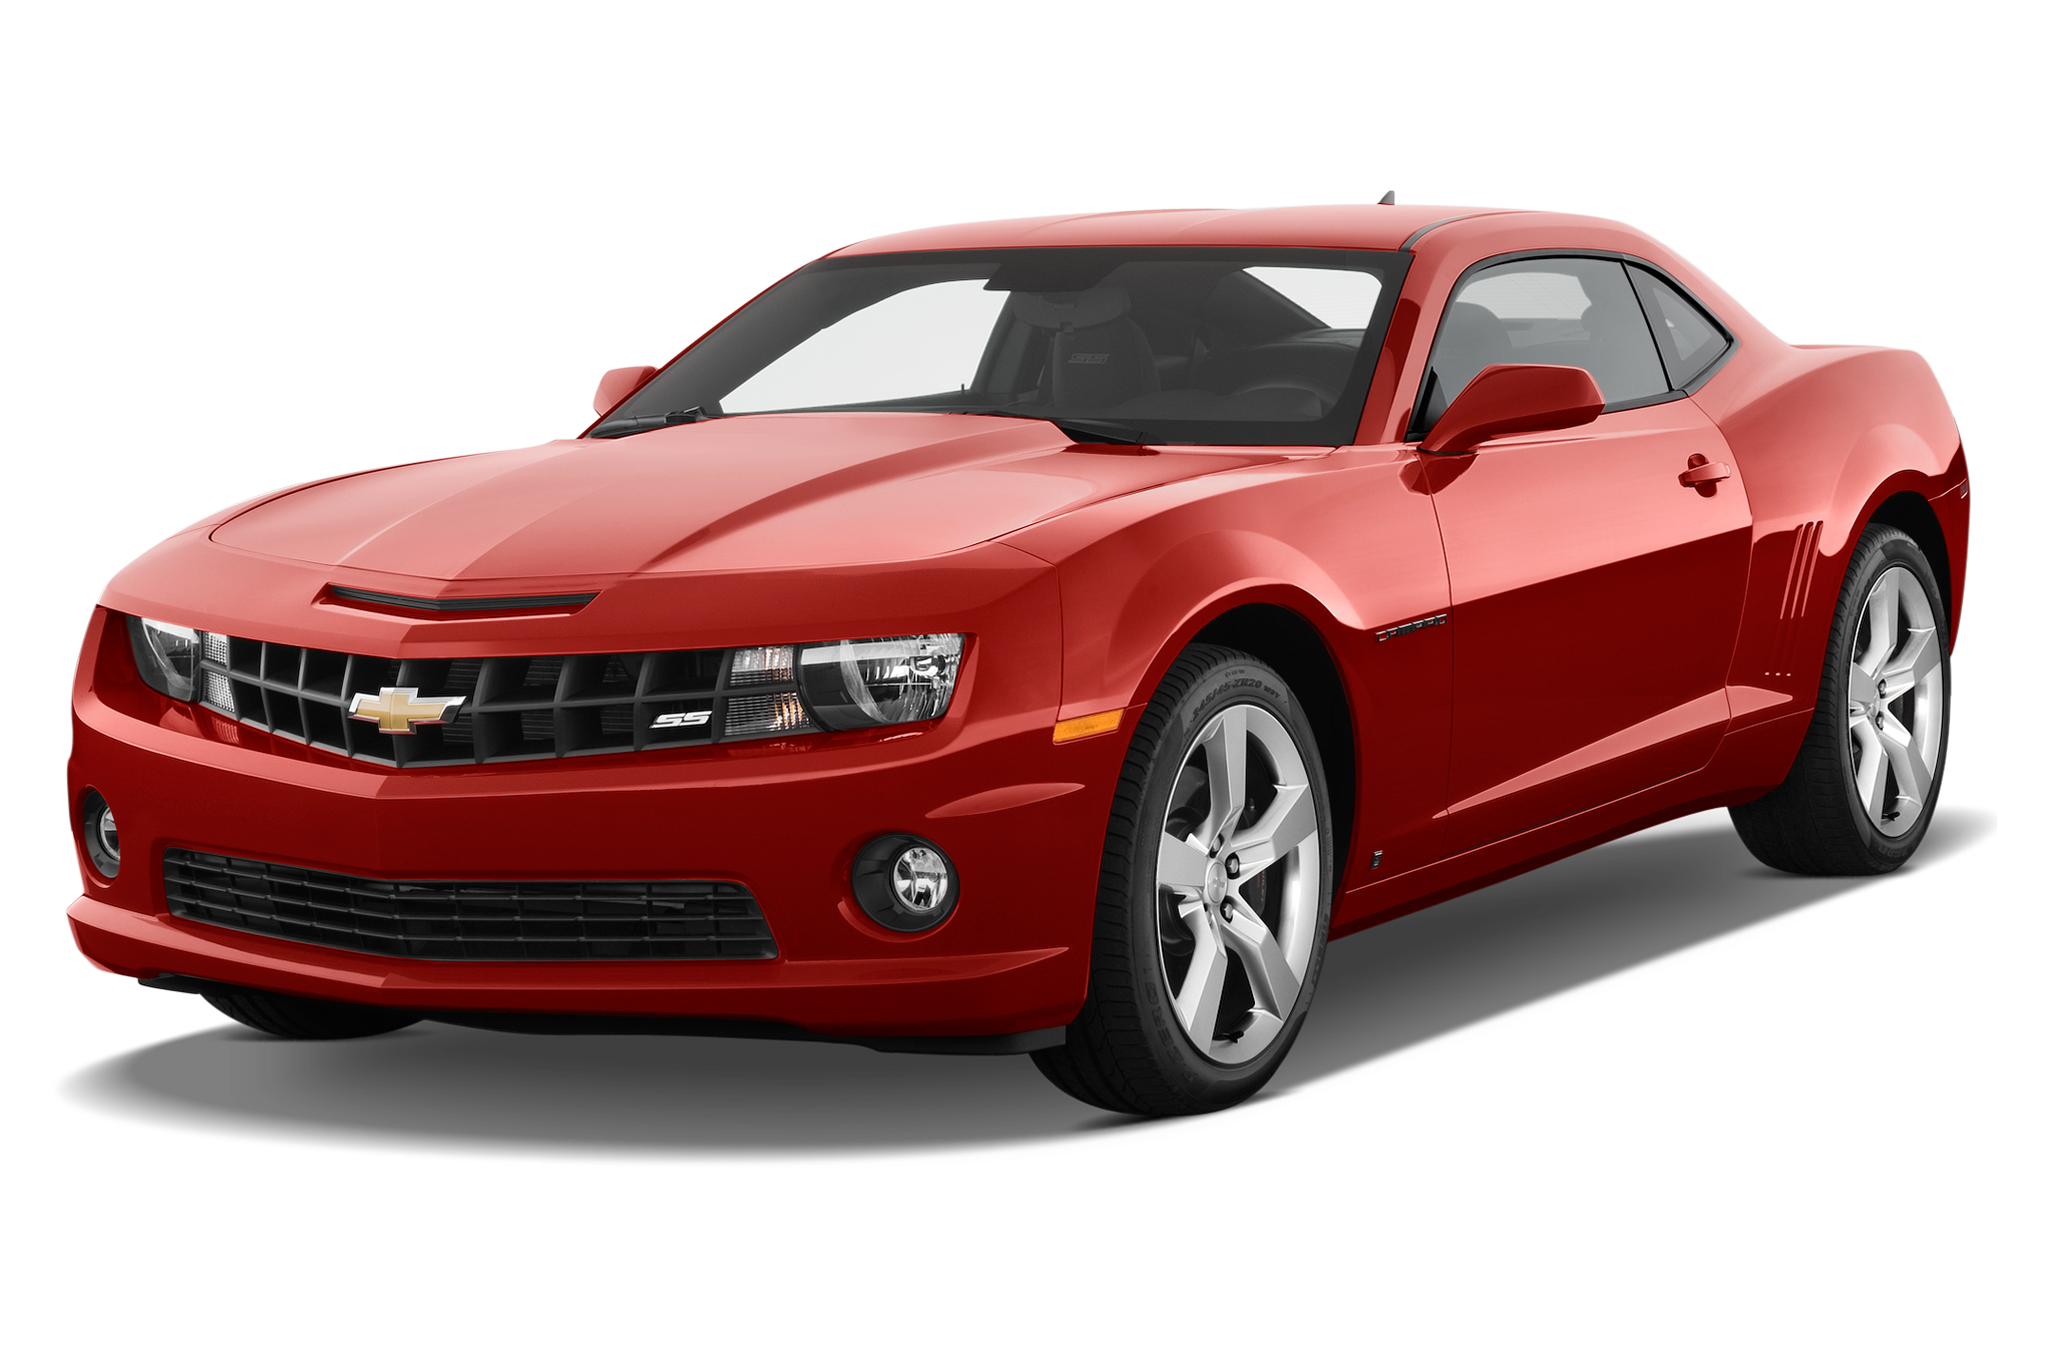 Chevrolet PNG Image.